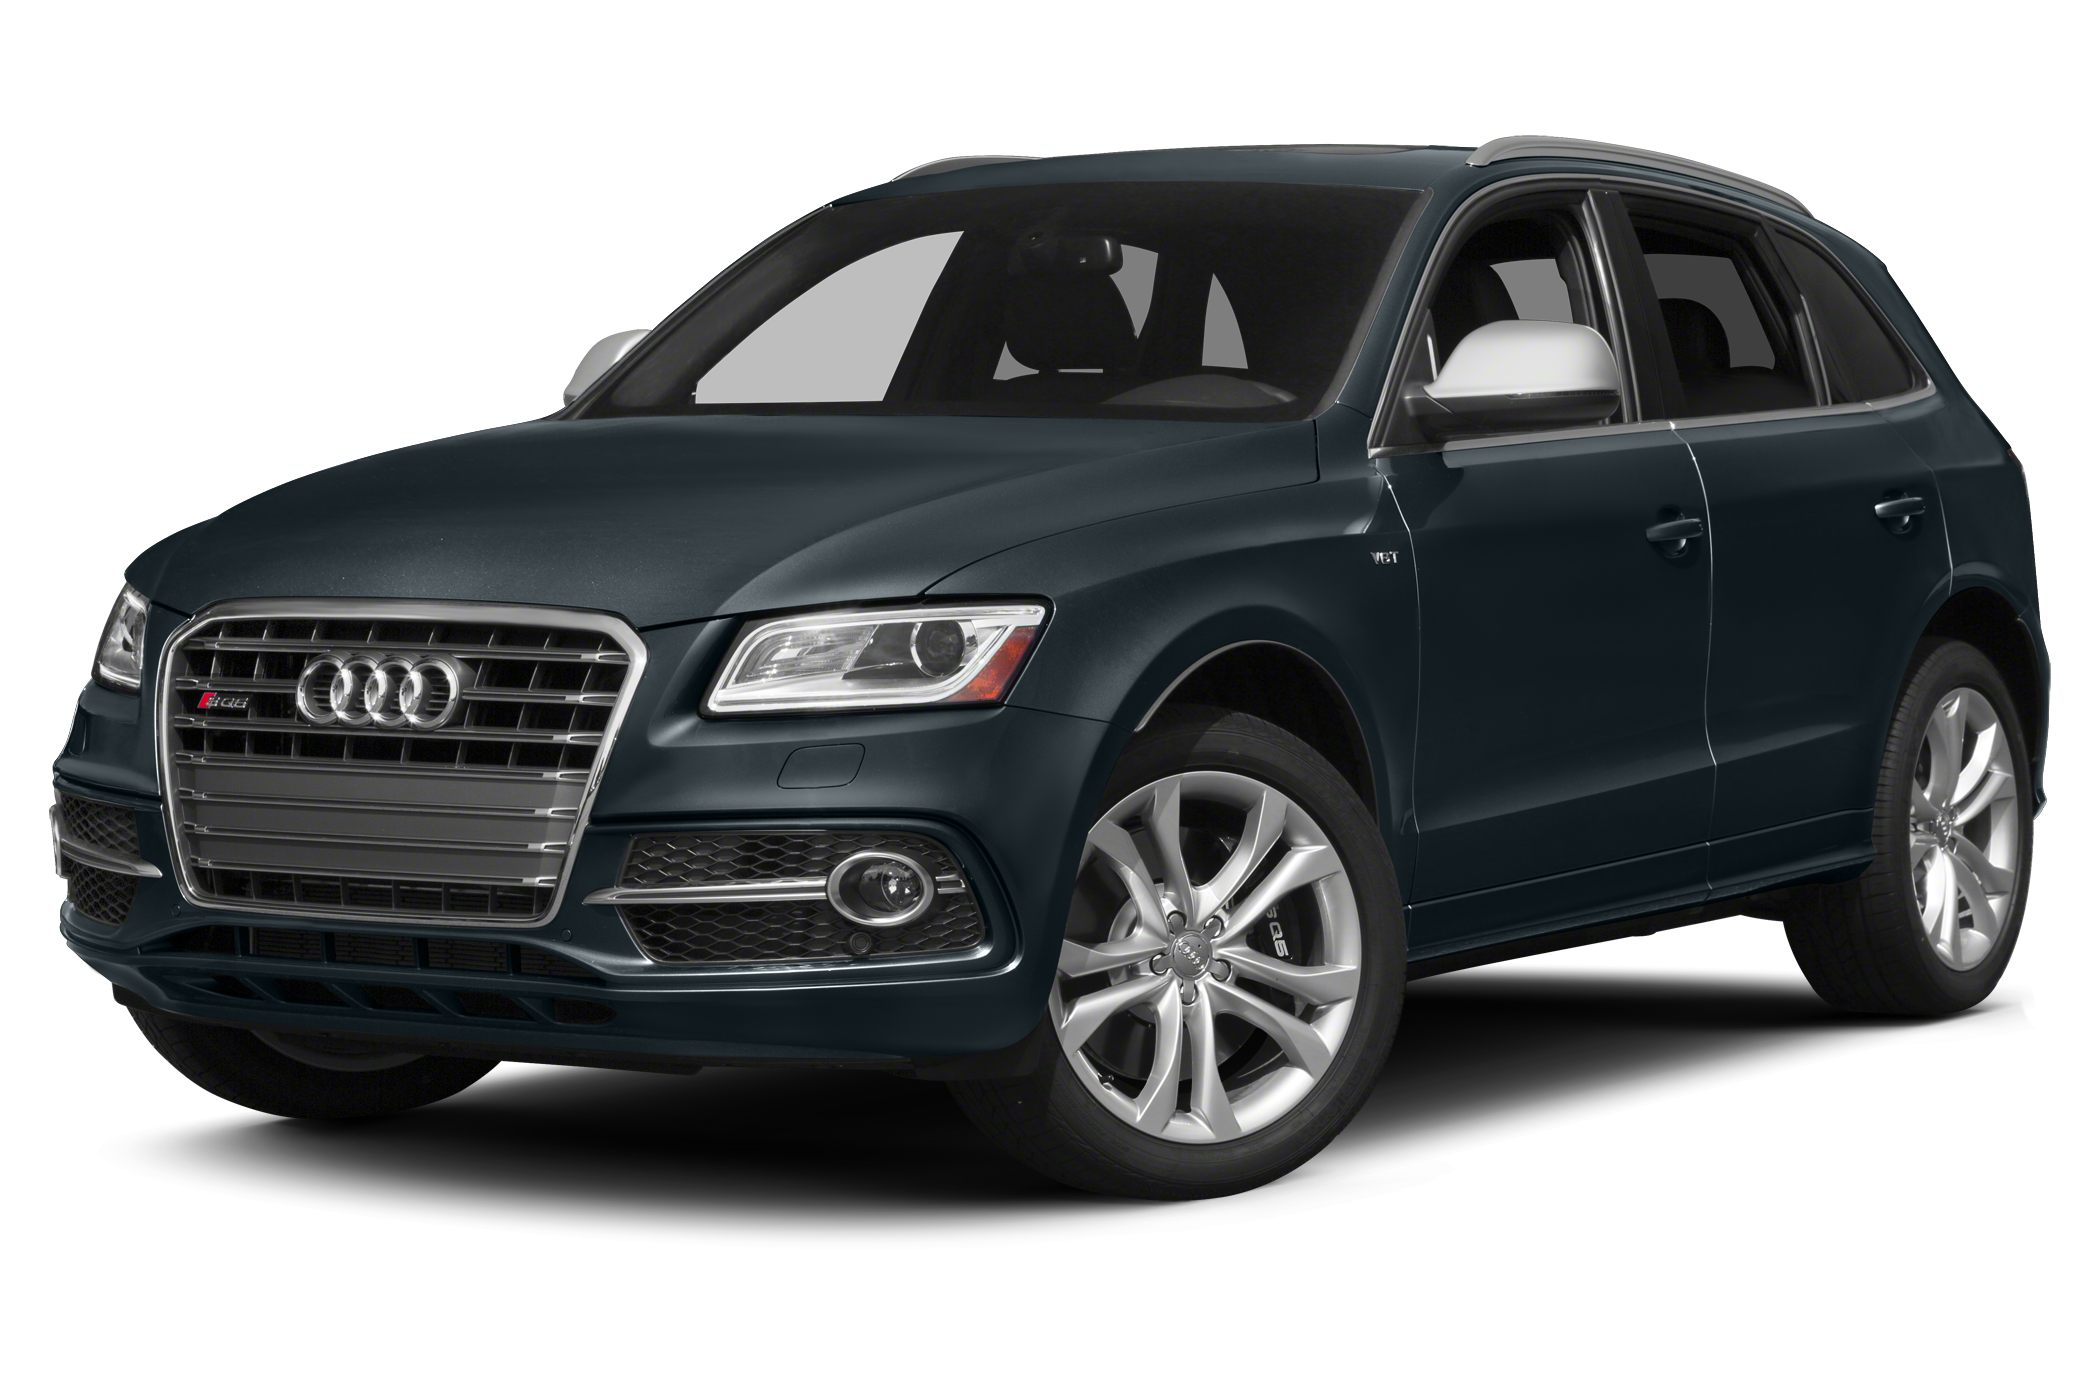 2015 Audi SQ5 3.0T Premium Plus SUV for sale in New London for $72,010 with 17 miles